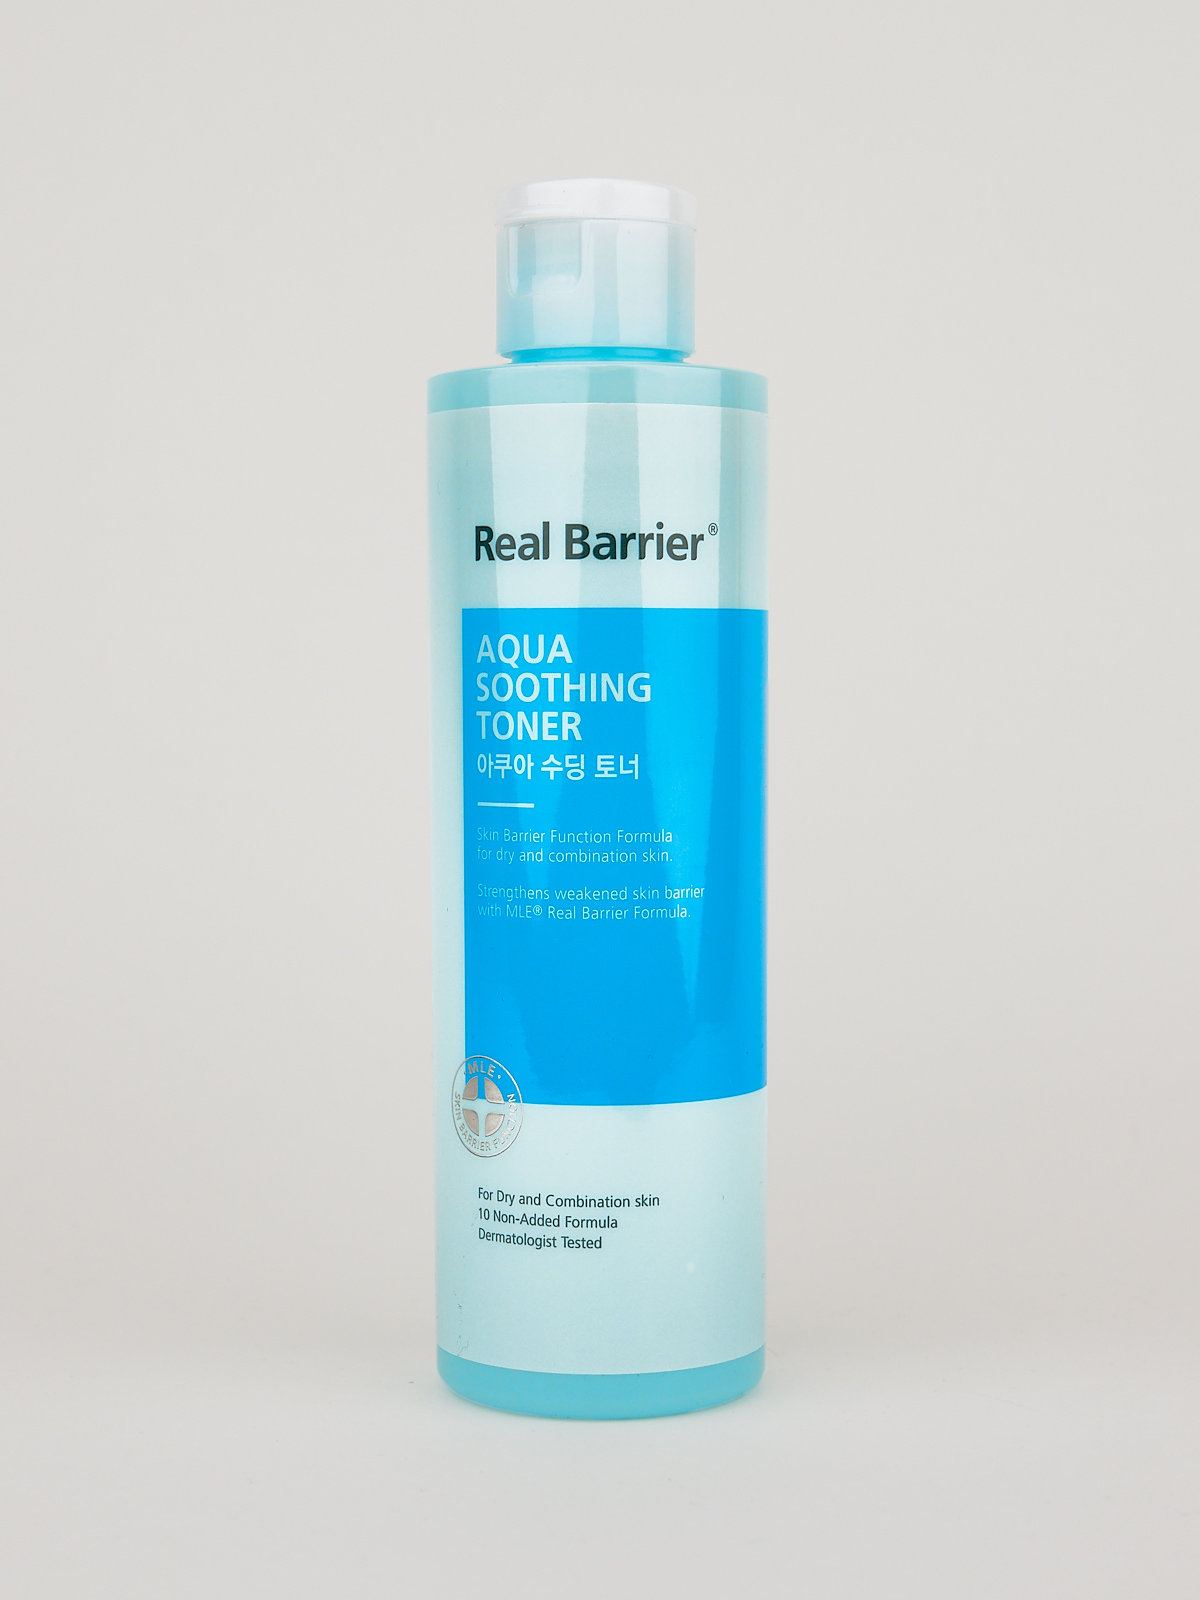 Real Barrier Aqua Soothing Toner in türkisener Flasche